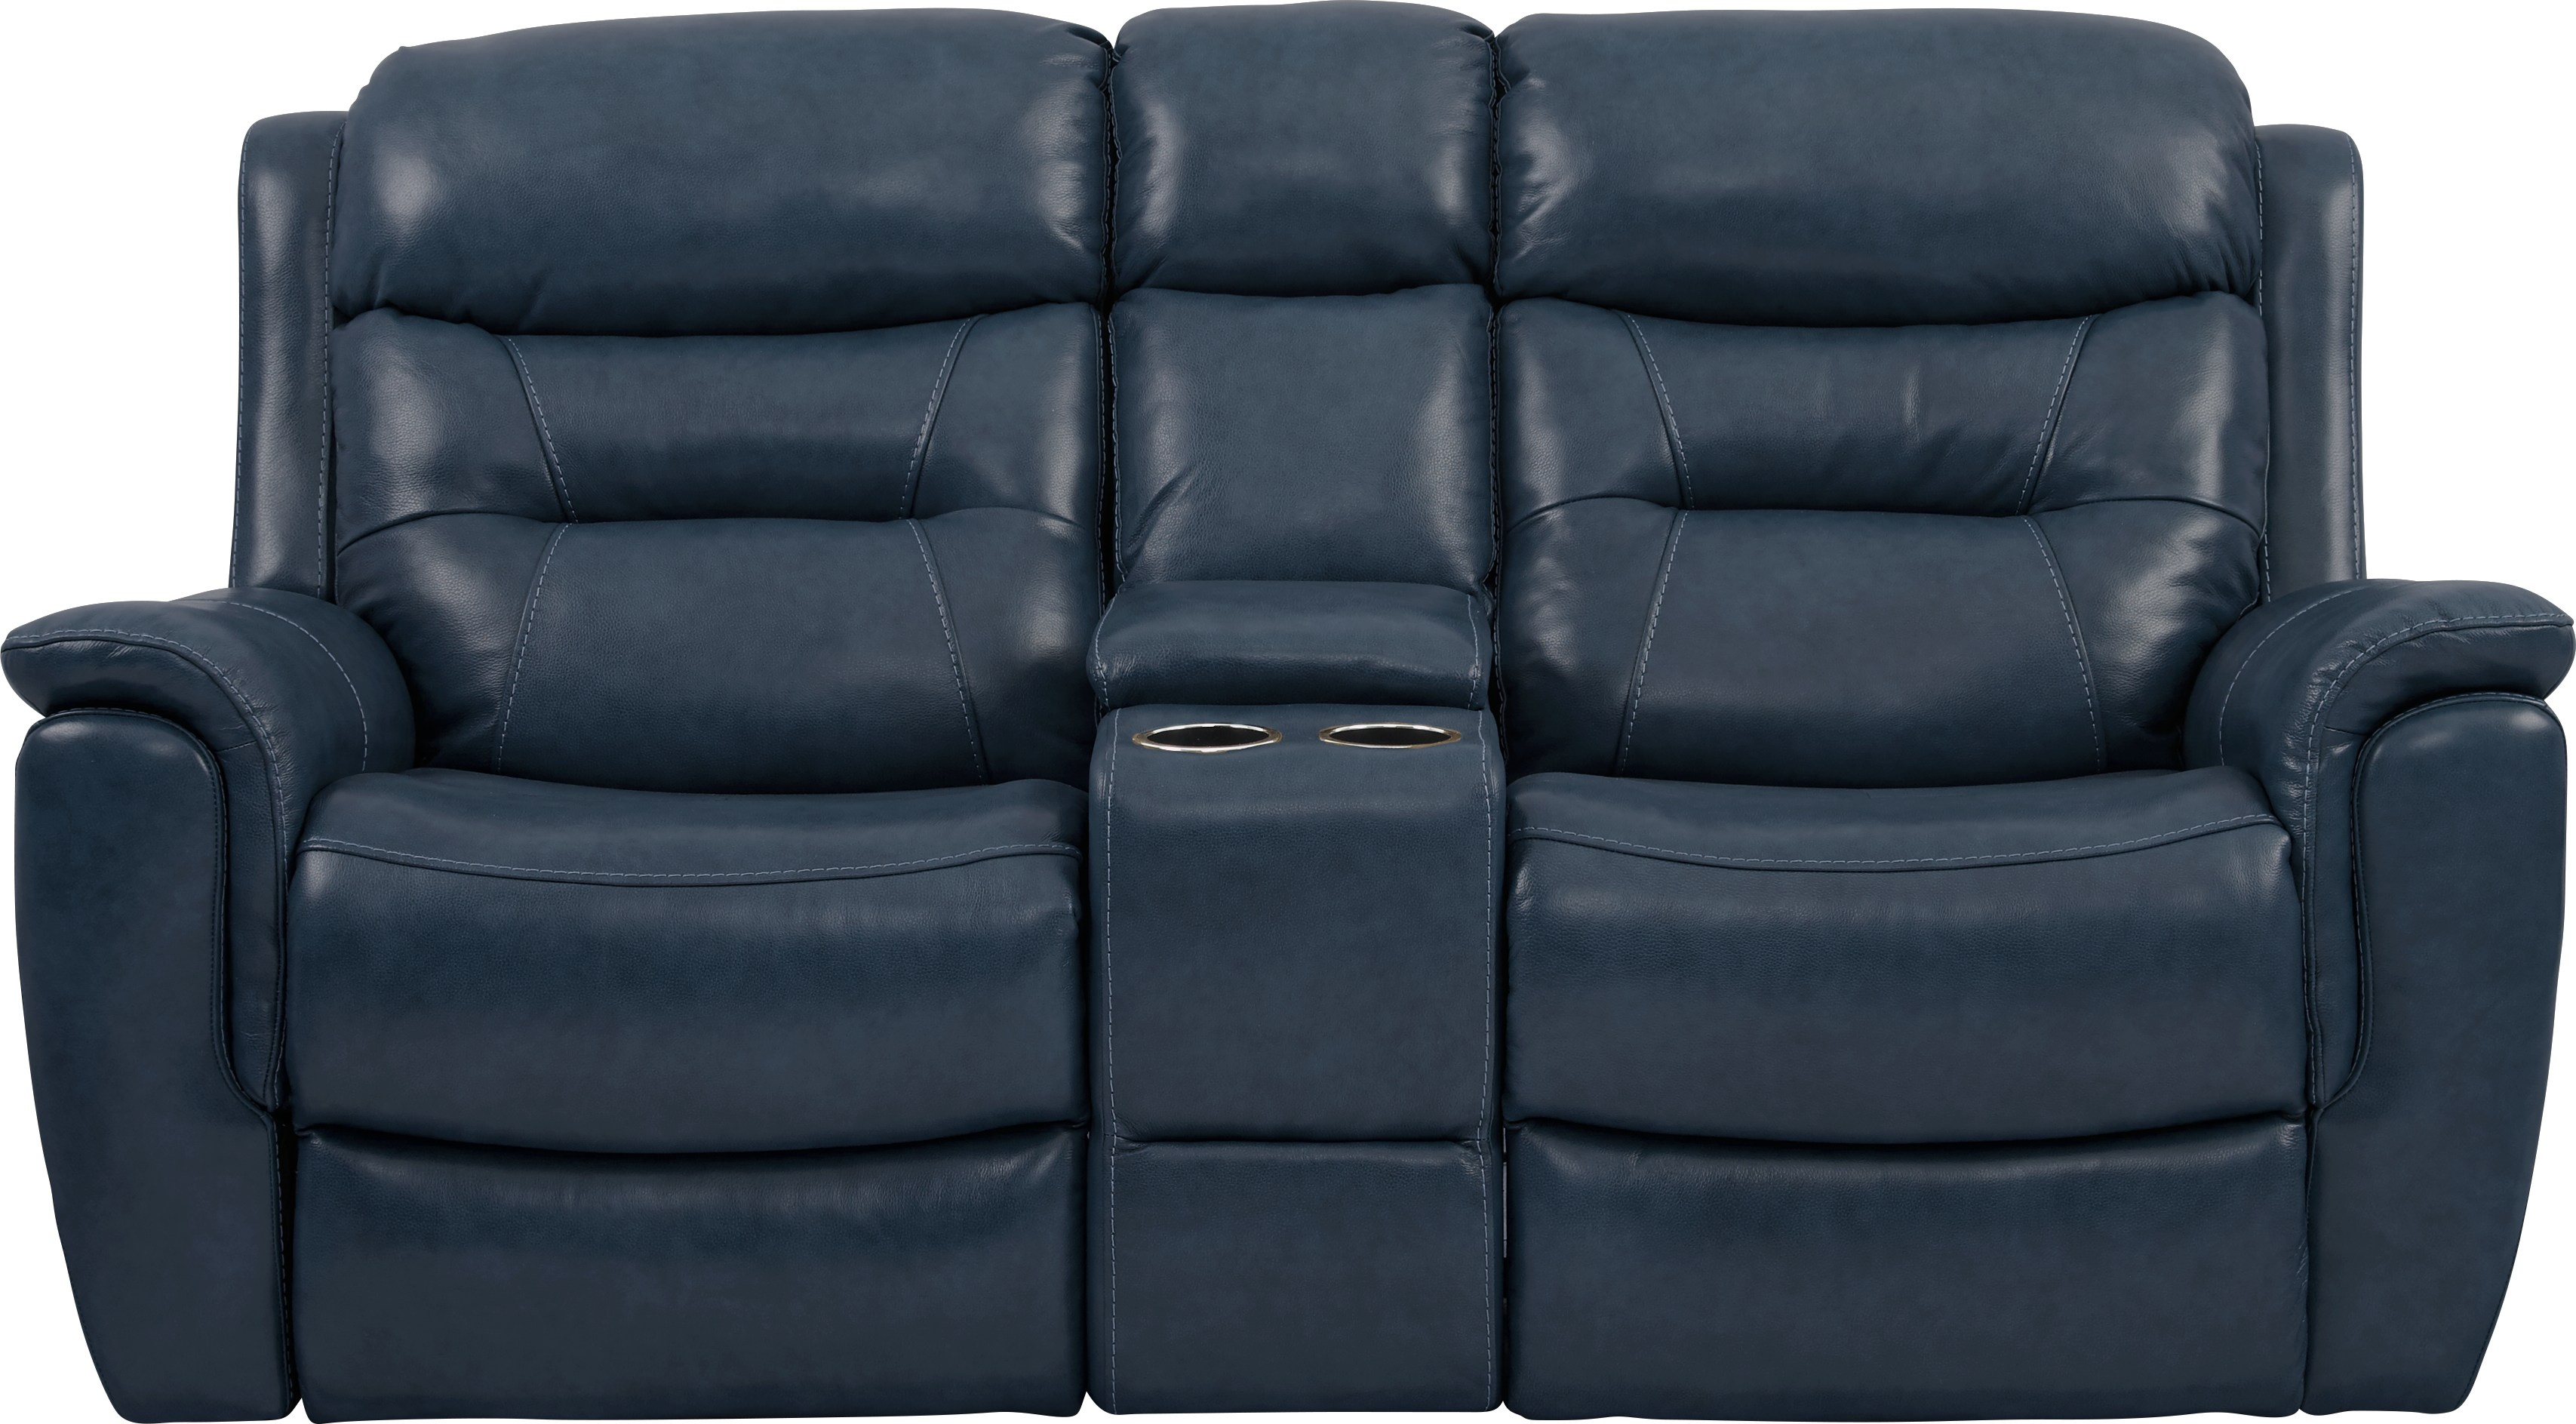 Sabella Navy Leather Reclining Console Loveseat - Leather Loveseats (Blue)